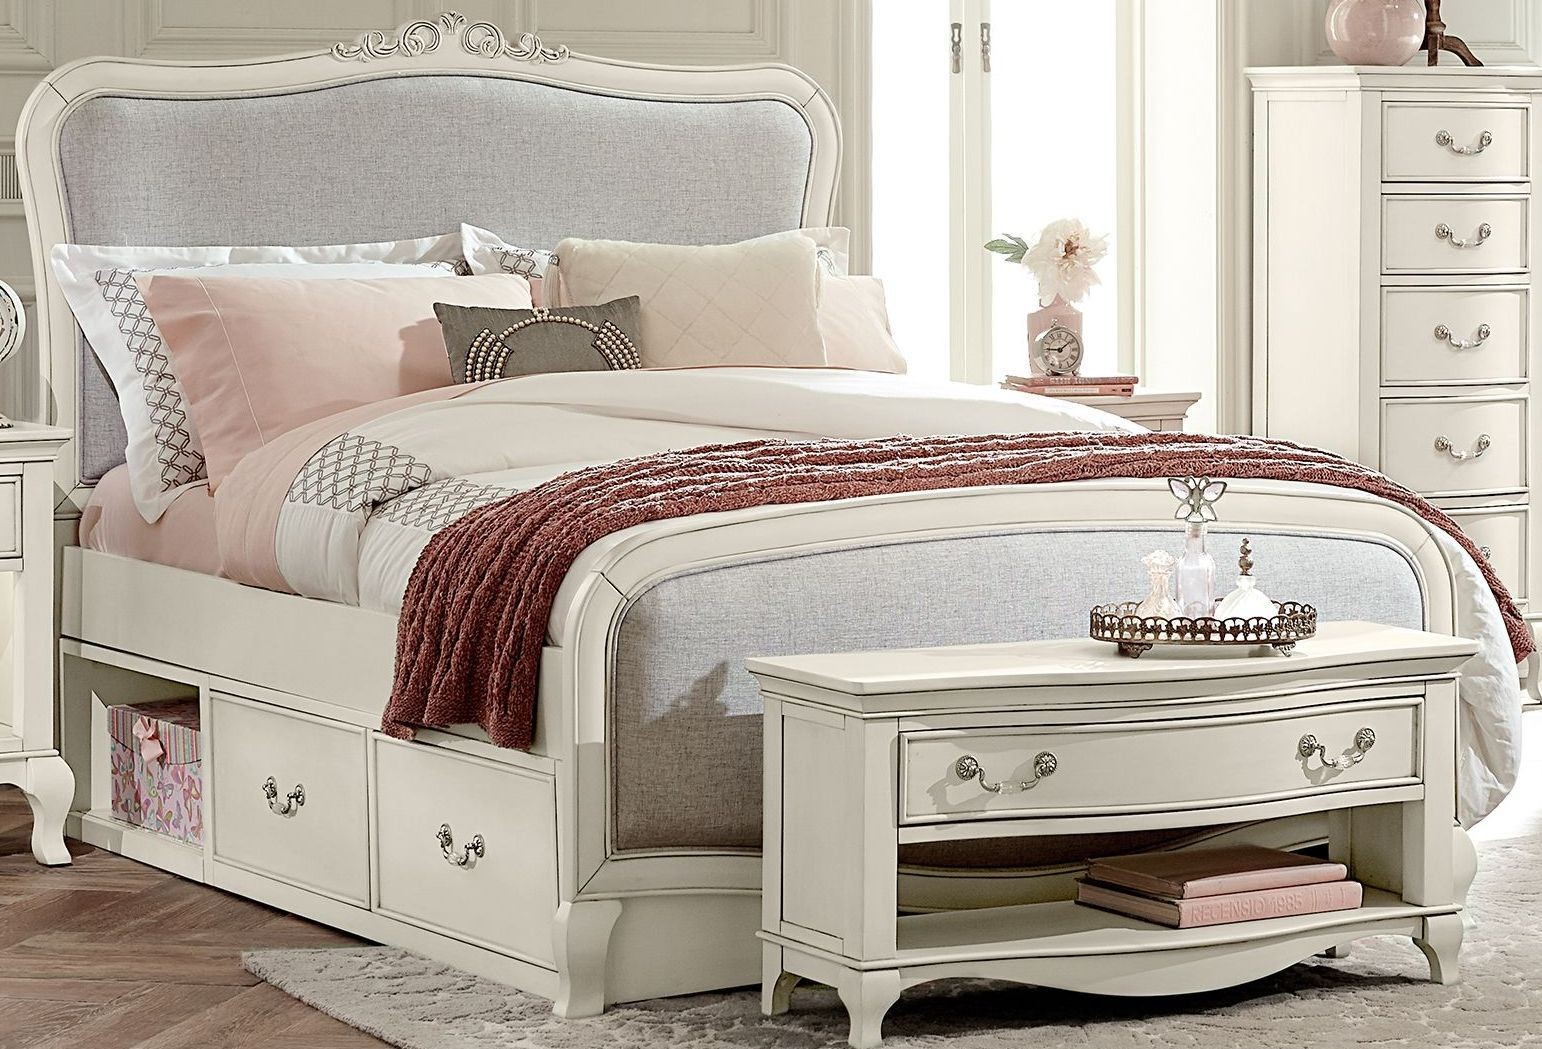 kensington antique white katherine upholstered full panel bed with storage 20025ns ne kids. Black Bedroom Furniture Sets. Home Design Ideas